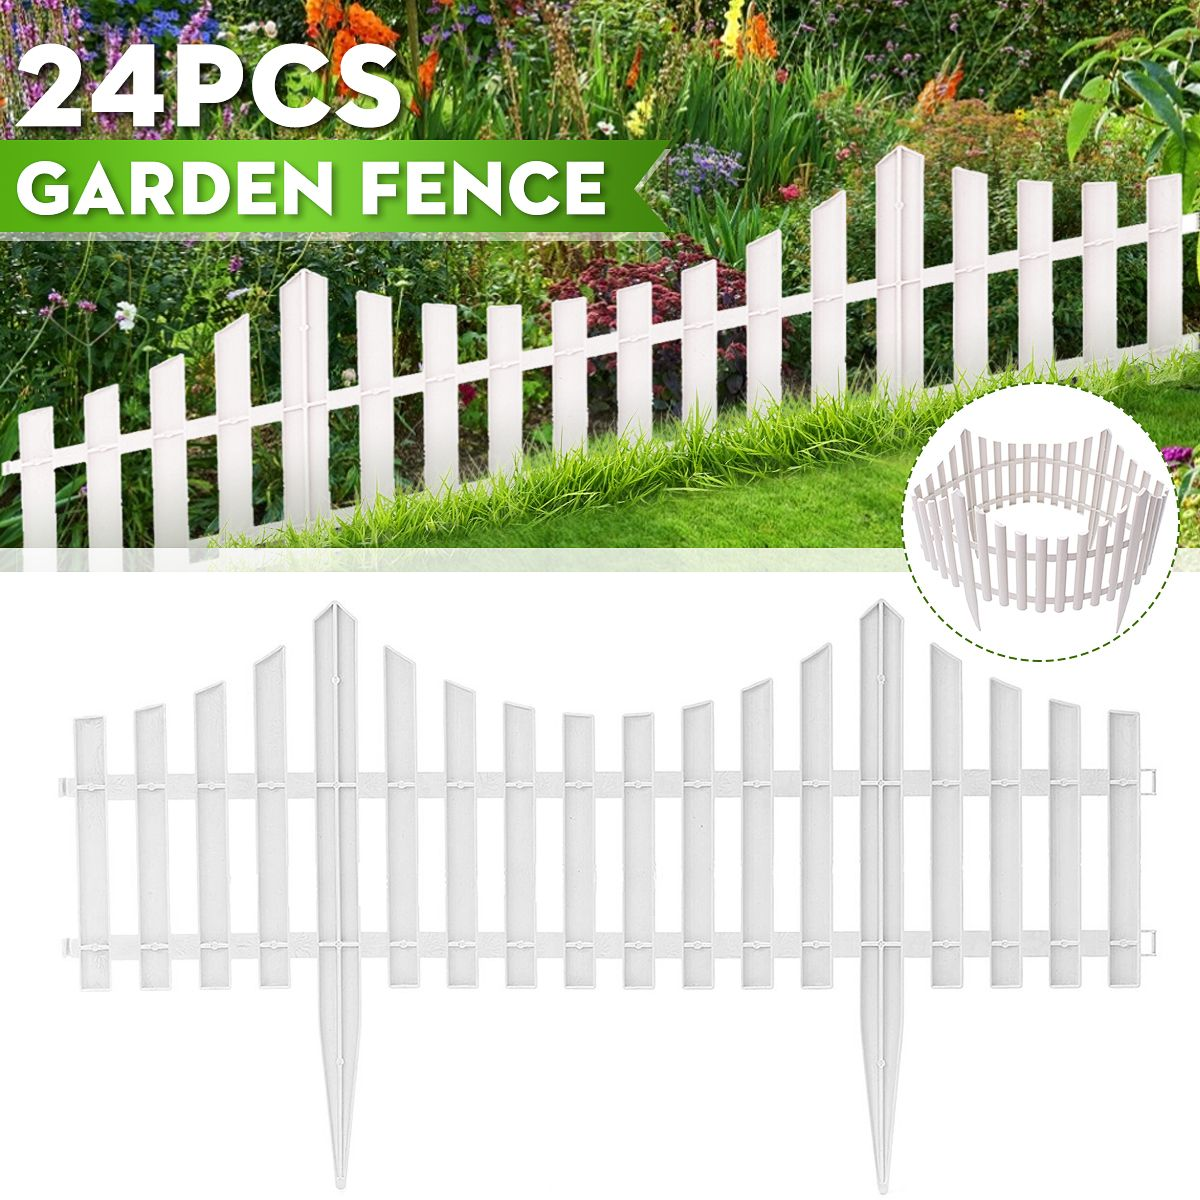 On Clearance 24 Pack White Vinyl Picket Garden Border Fence 48 Ft Long Garden Border Fencing Fence Pannels Outdoor Landscape Decor Edging Yard Walmart Com In 2020 Outdoor Landscaping Grass Edging Landscape Decor